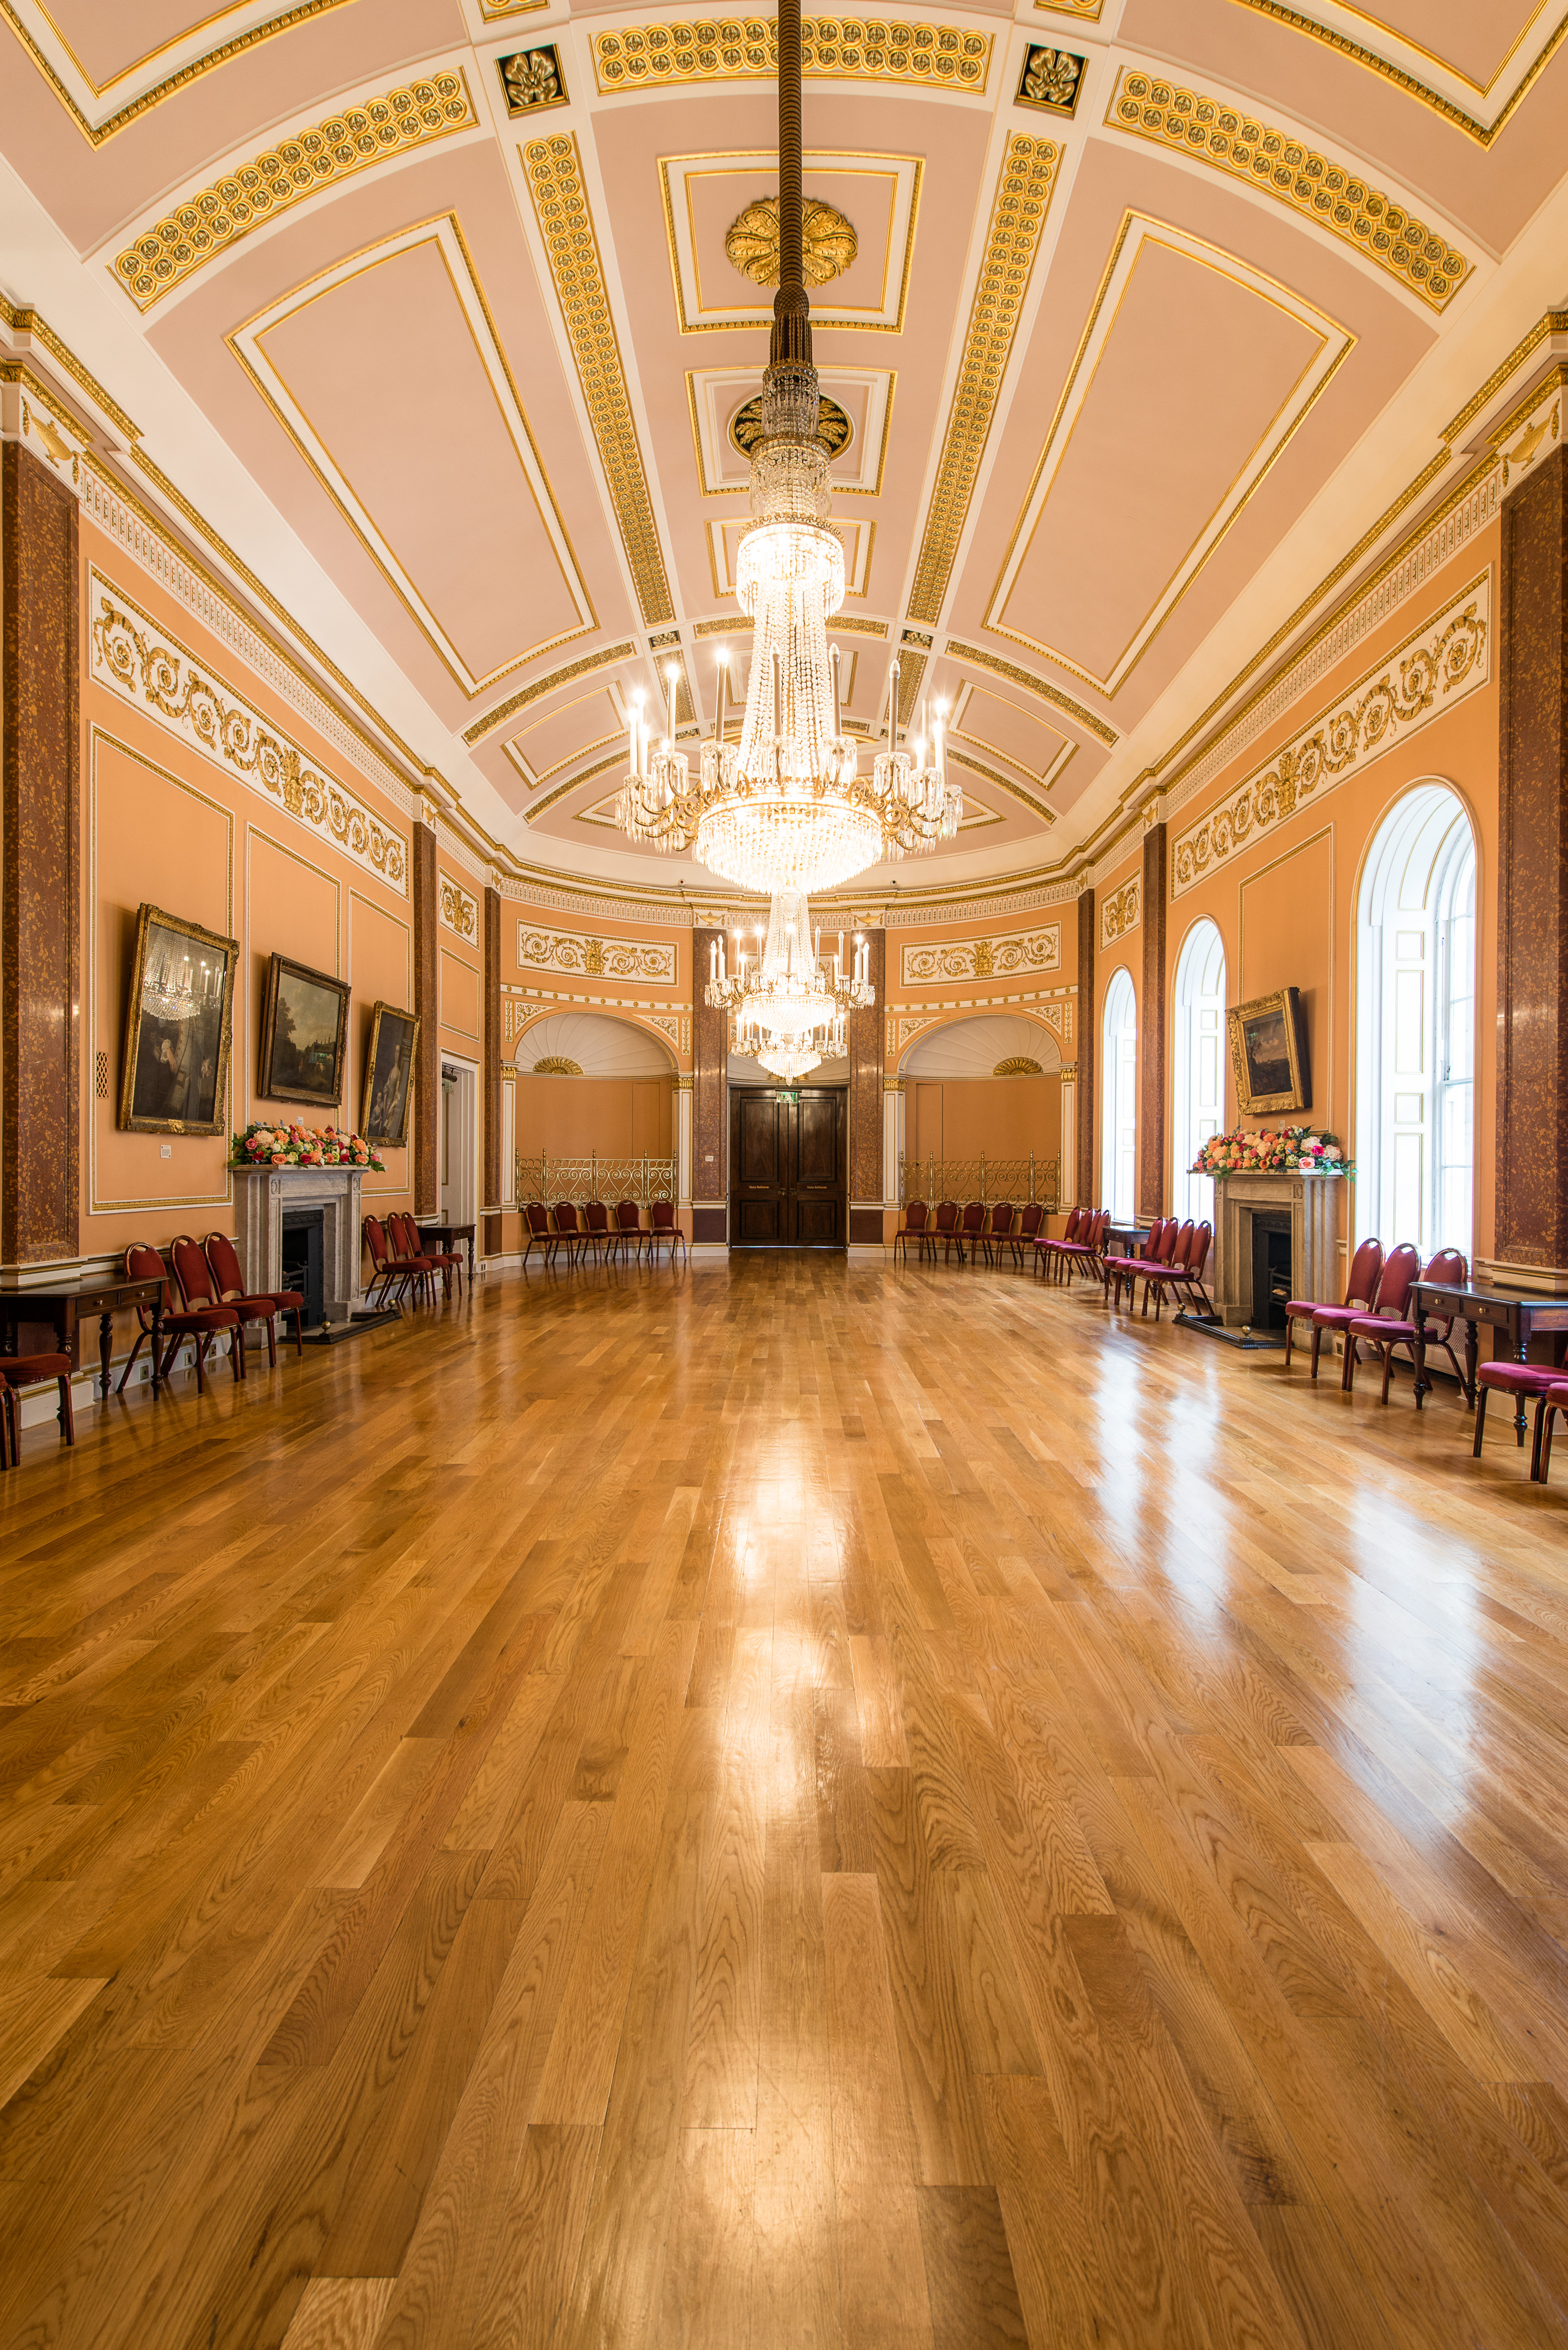 The Small Ballroom - Liverpool Town Hall